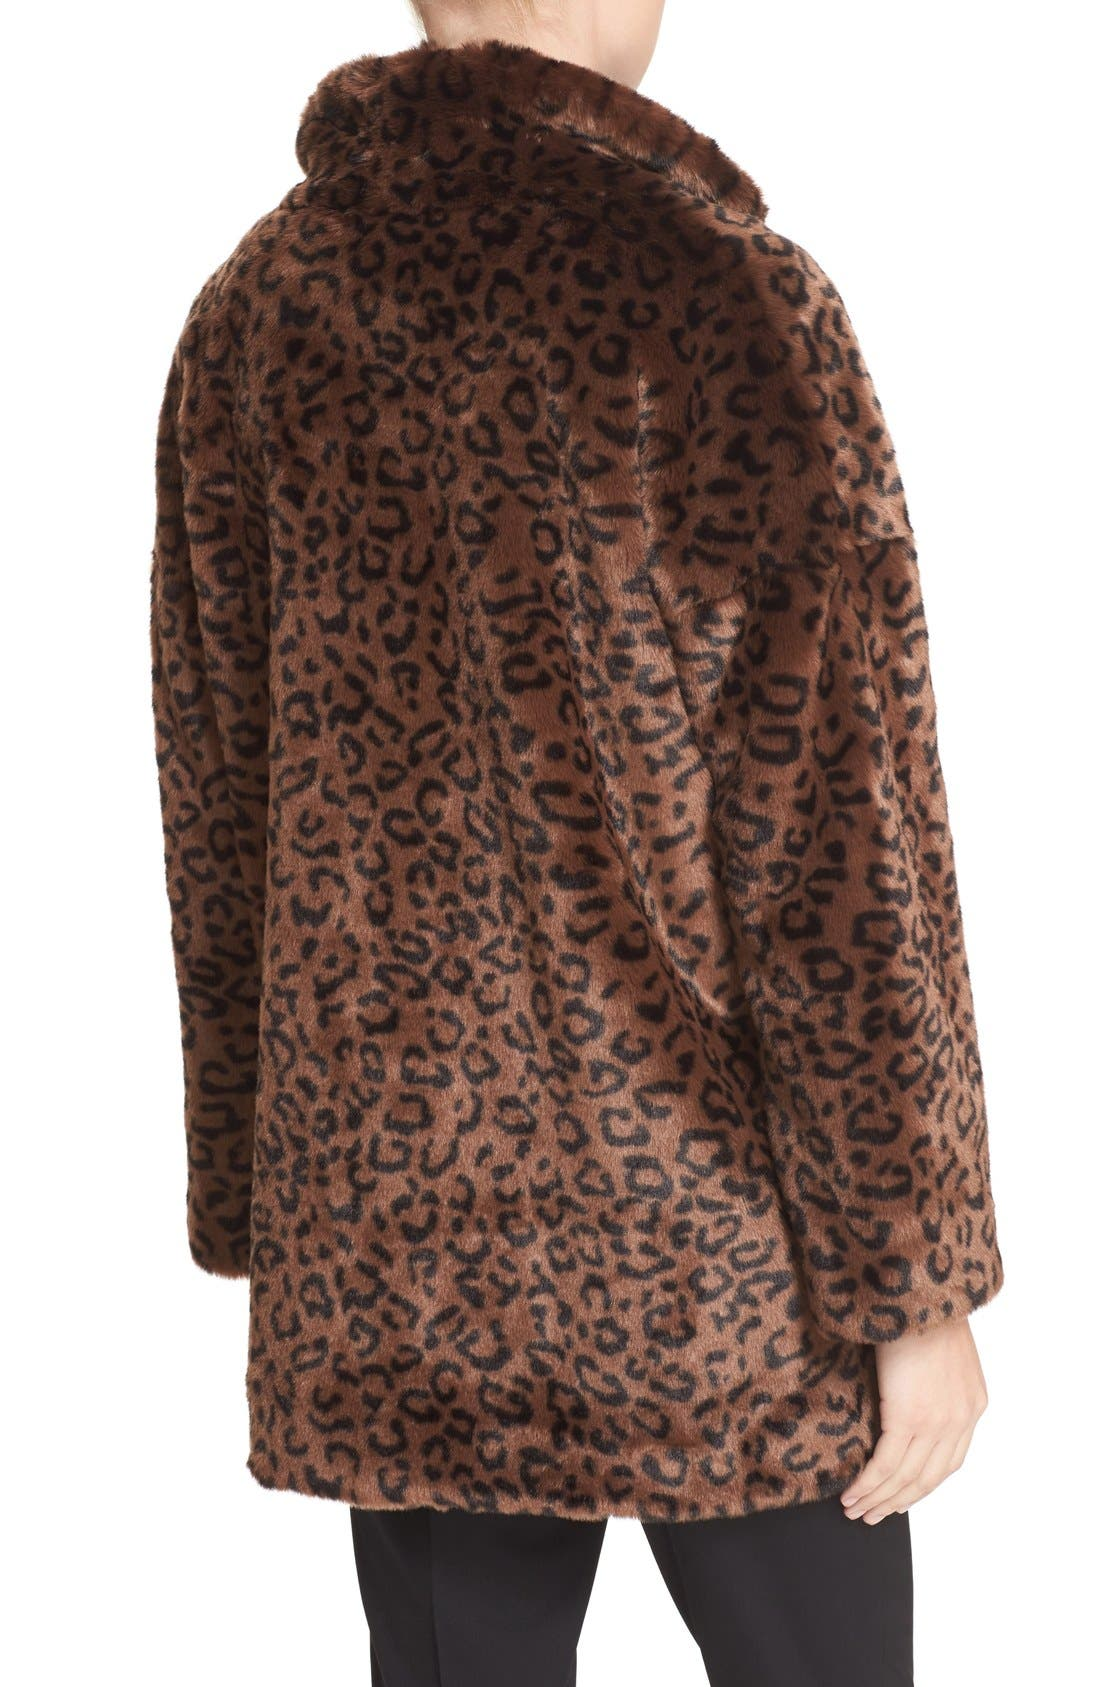 Leopard Print Faux Fur Coat,                             Alternate thumbnail 2, color,                             200